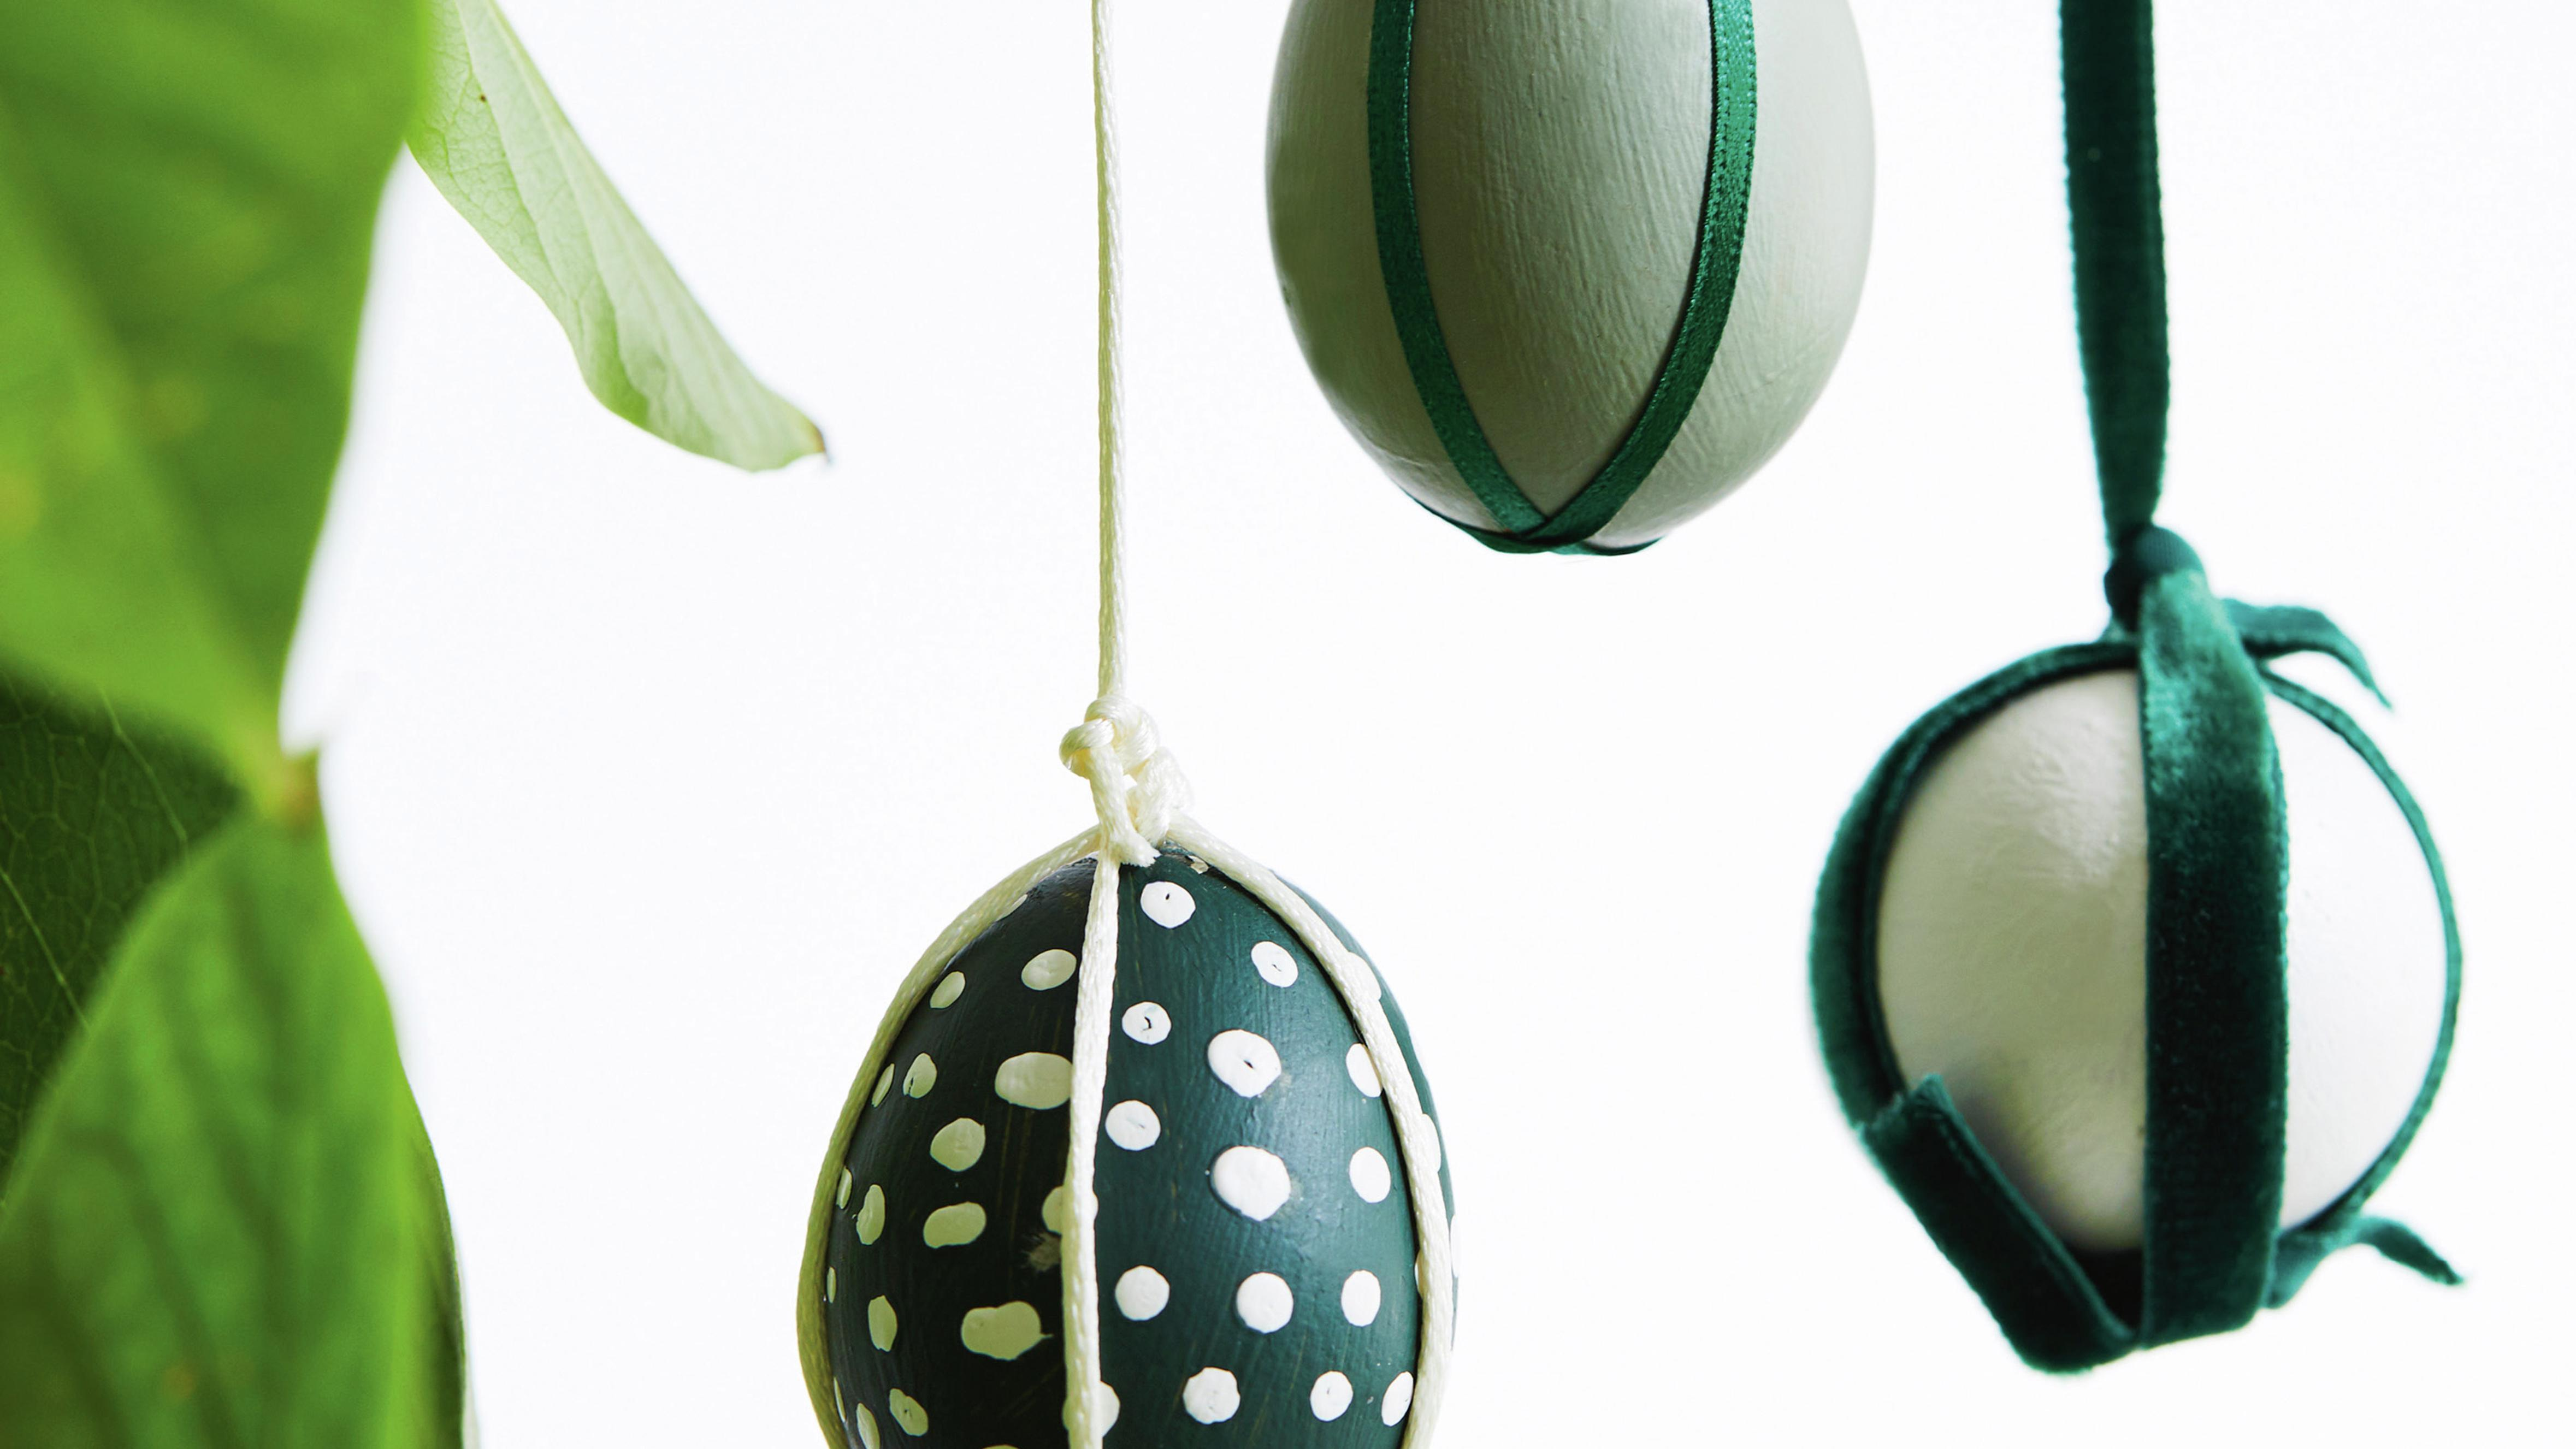 Decorated easter eggs hanging on a plant.